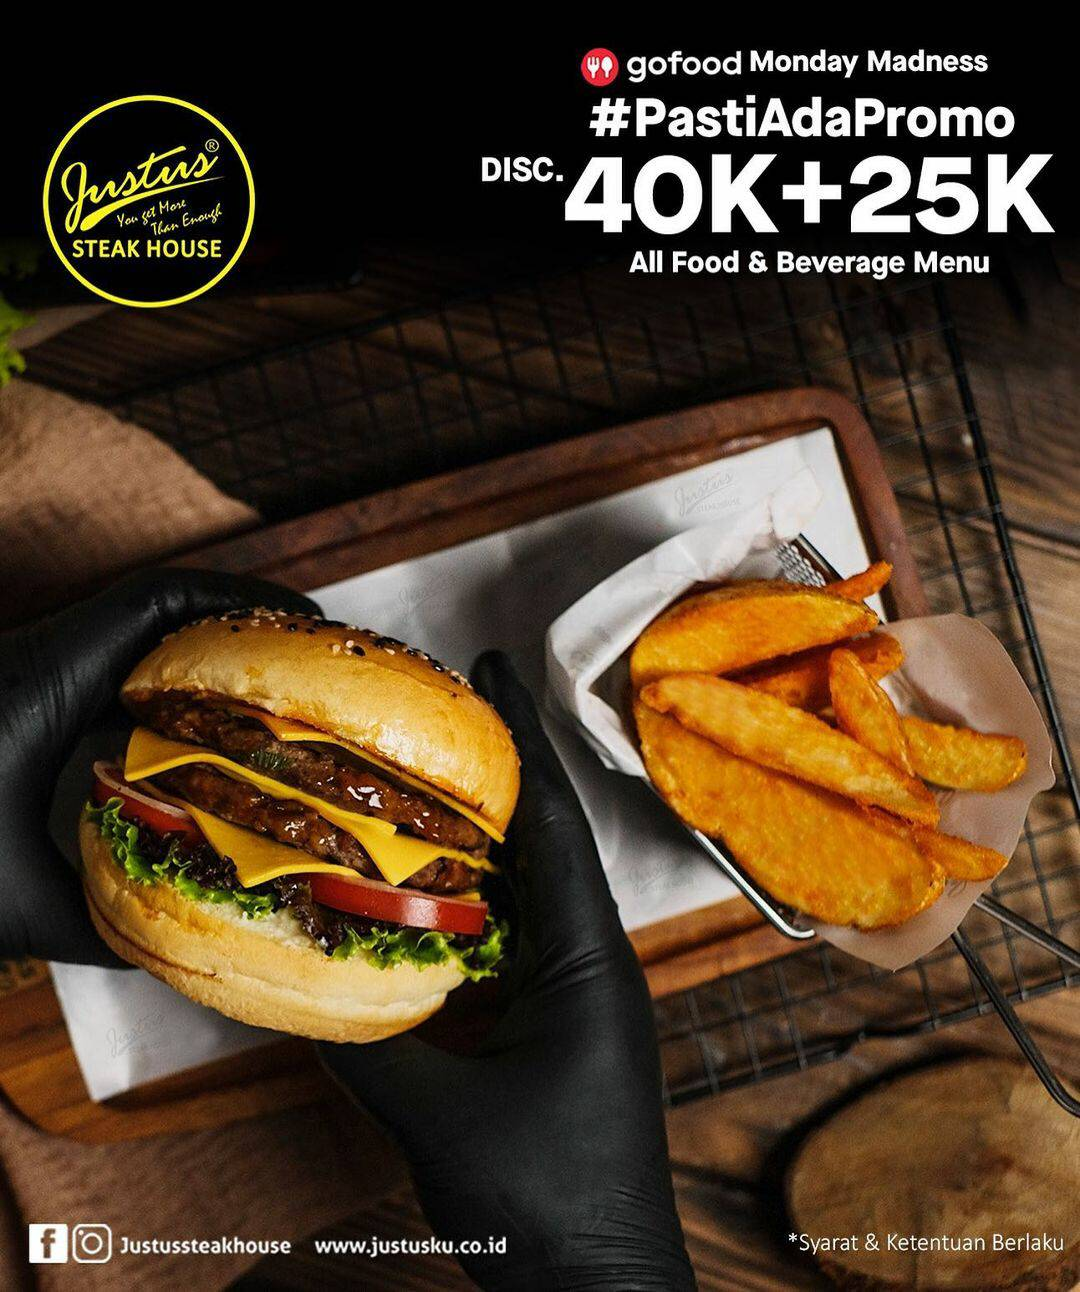 Justus Steak House Pasti Ada Promo! Diskon 40k + 25k via GoFood